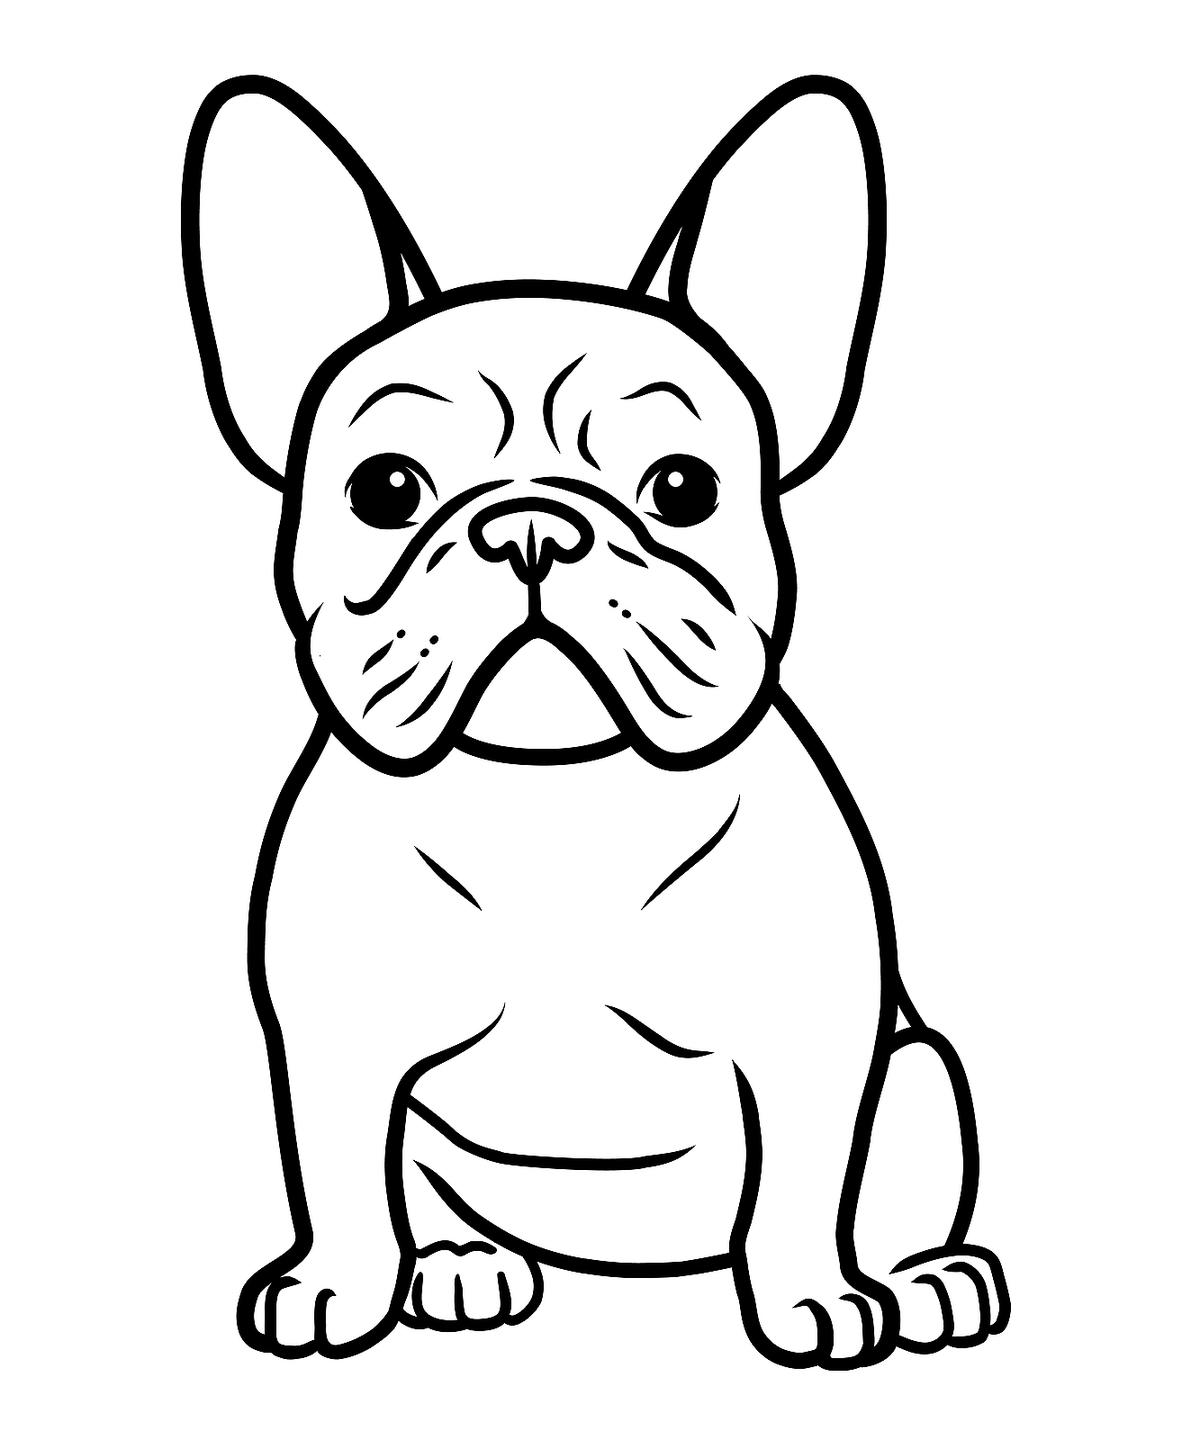 dogs pictures to print animals coloring pages cute puppy playing kids pictures to dogs print